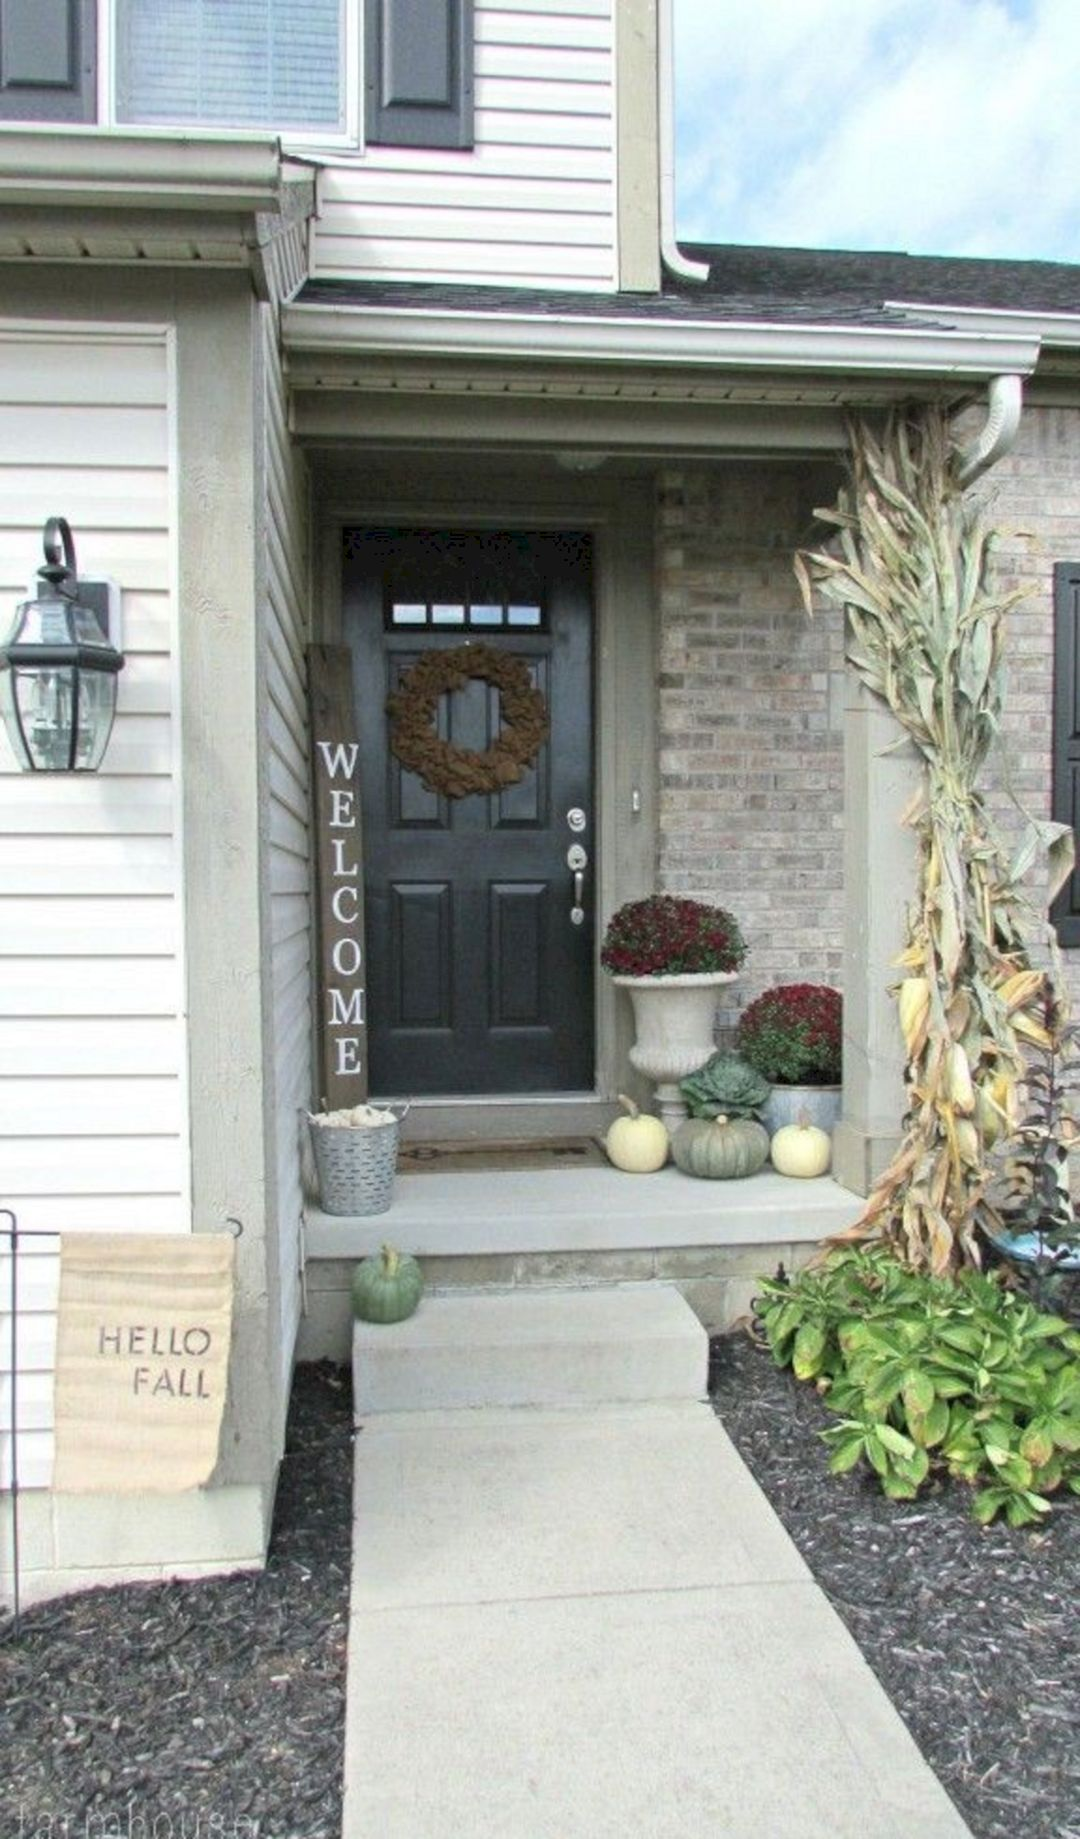 5 Gorgeous Fall Decorating Ideas Small Front Porch Front Porch Decorating Small Front Porches Porch Decorating